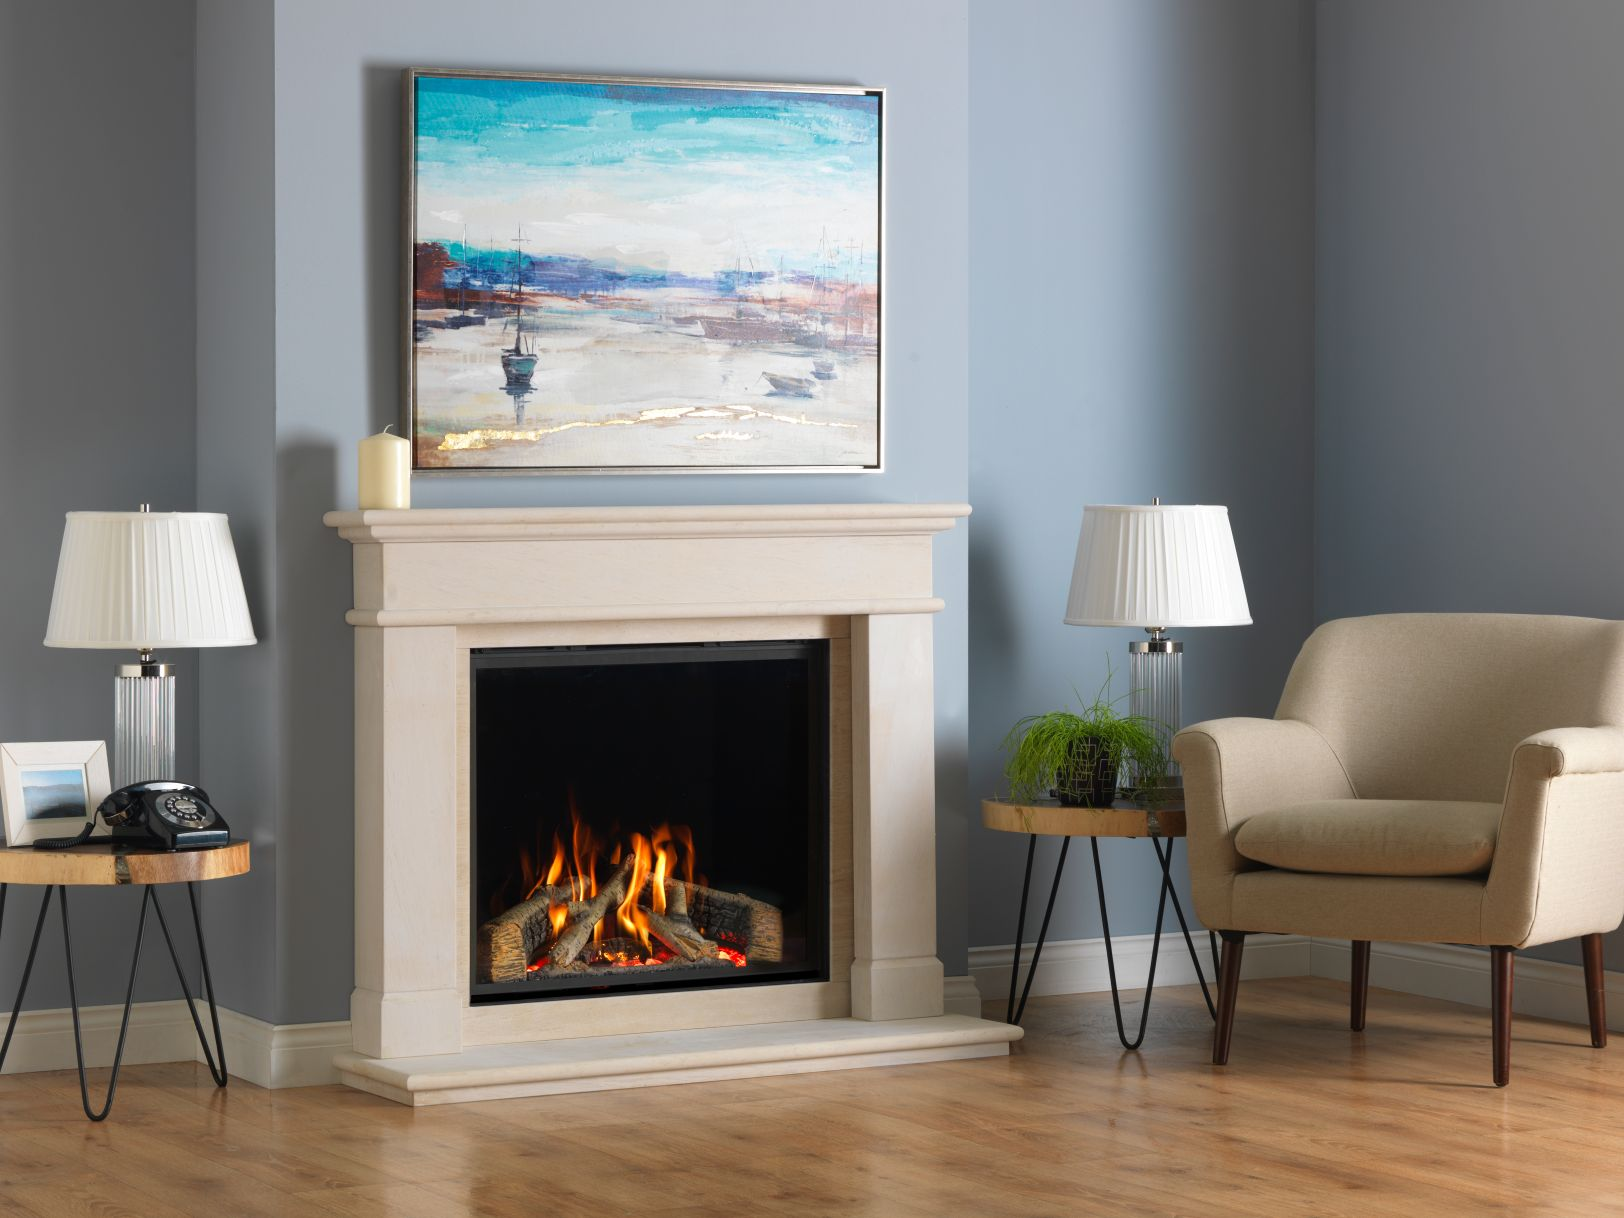 Onfinity 800HD Gas Fire in Balmoral Fireplace Surround